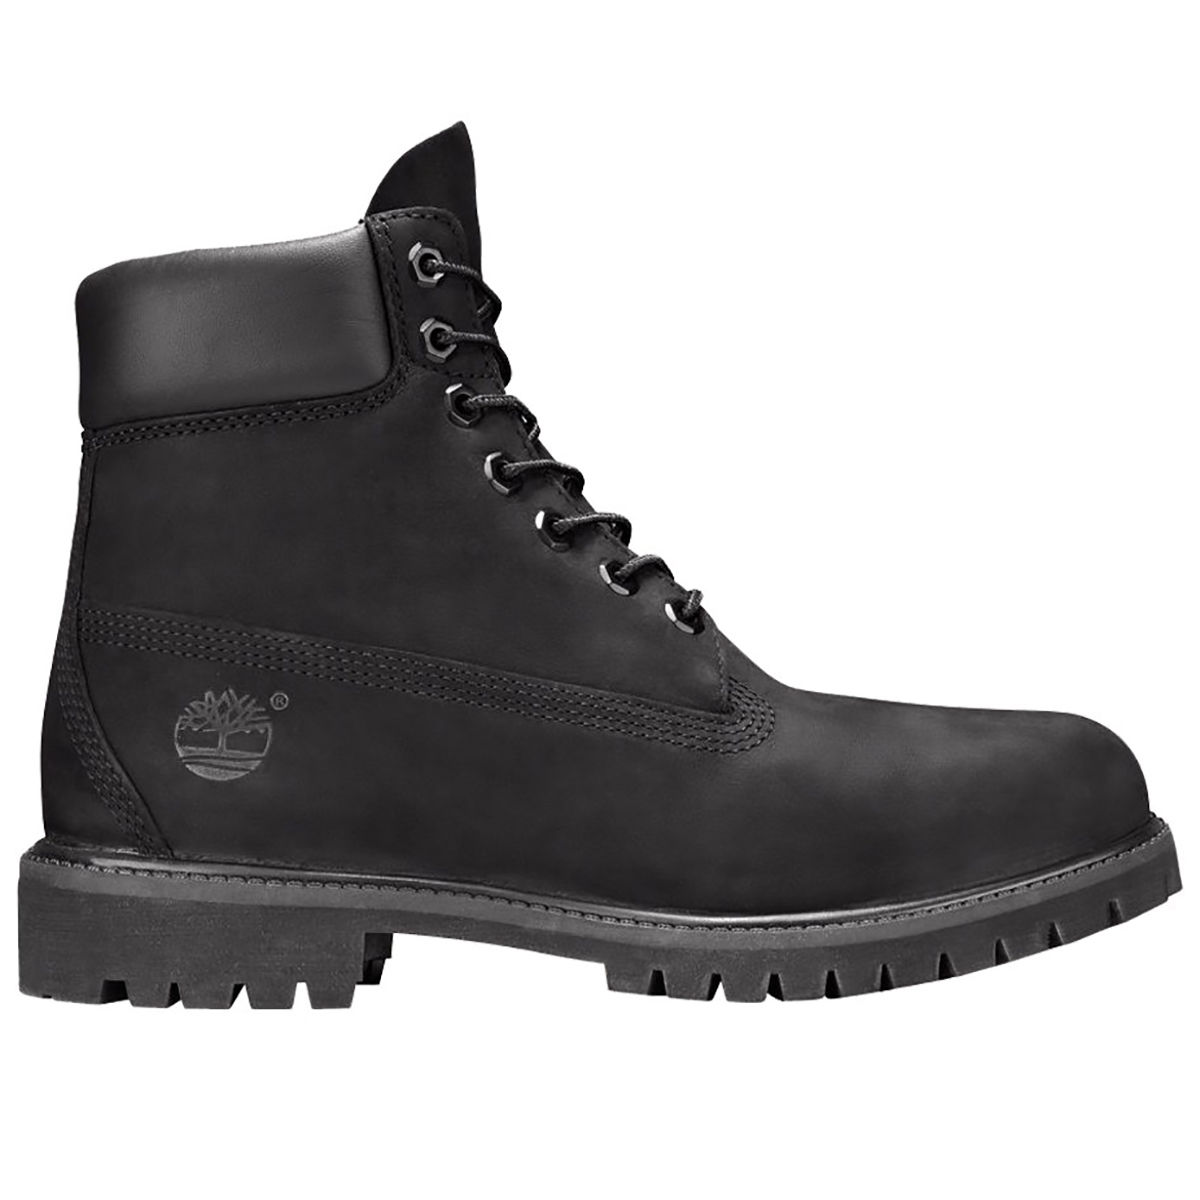 Timberland 6 Inch Premium Waterproof Mens Boot